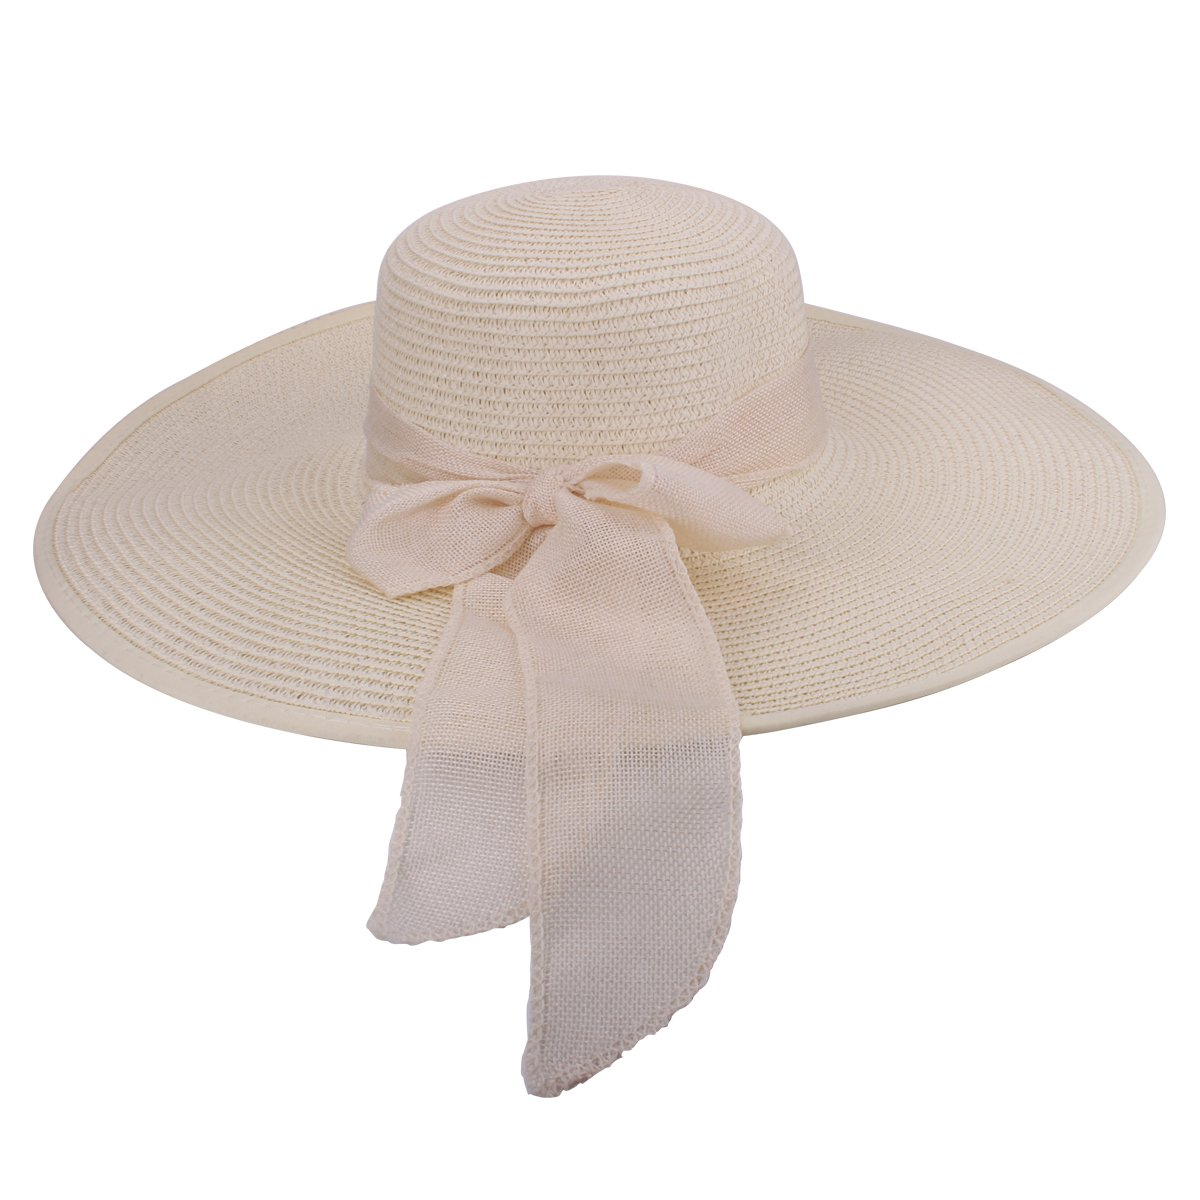 Summer Sun Hat UPF 50+ Beach Straw Hat UBowknot Casual Foldable Beach Caps for Women Girls Travel Packable with Chin Strap (White)